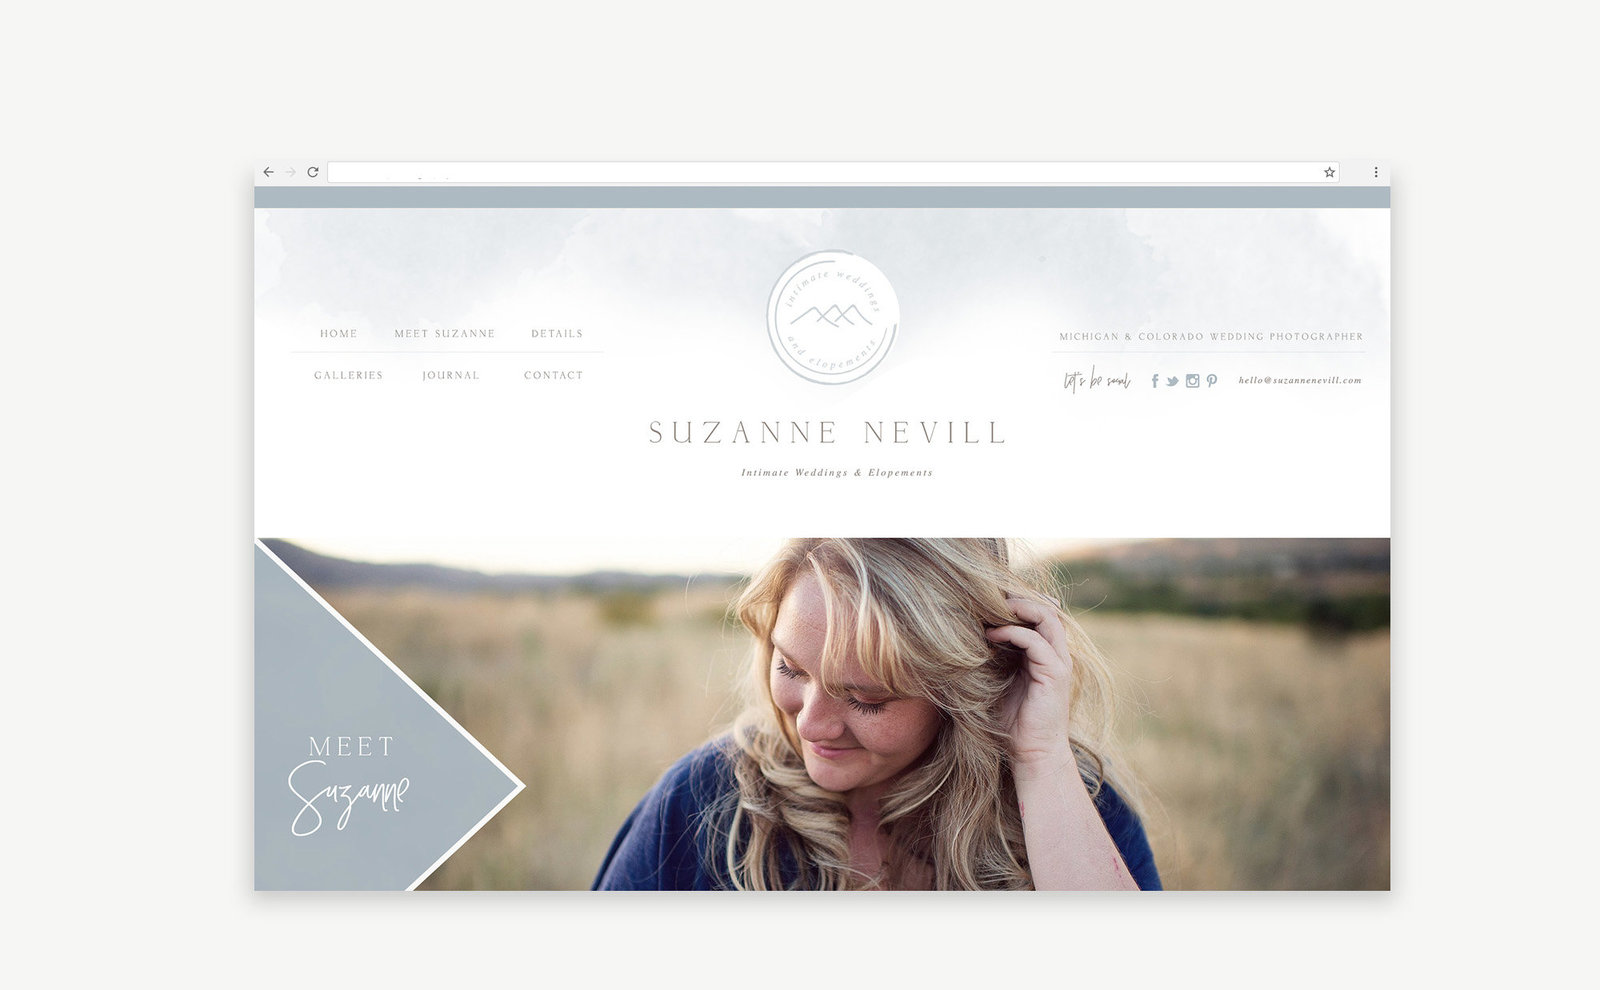 website-design-photographer-web-design-custom-showit5-colorado-wedding-photographer-suzanne-nevill-02